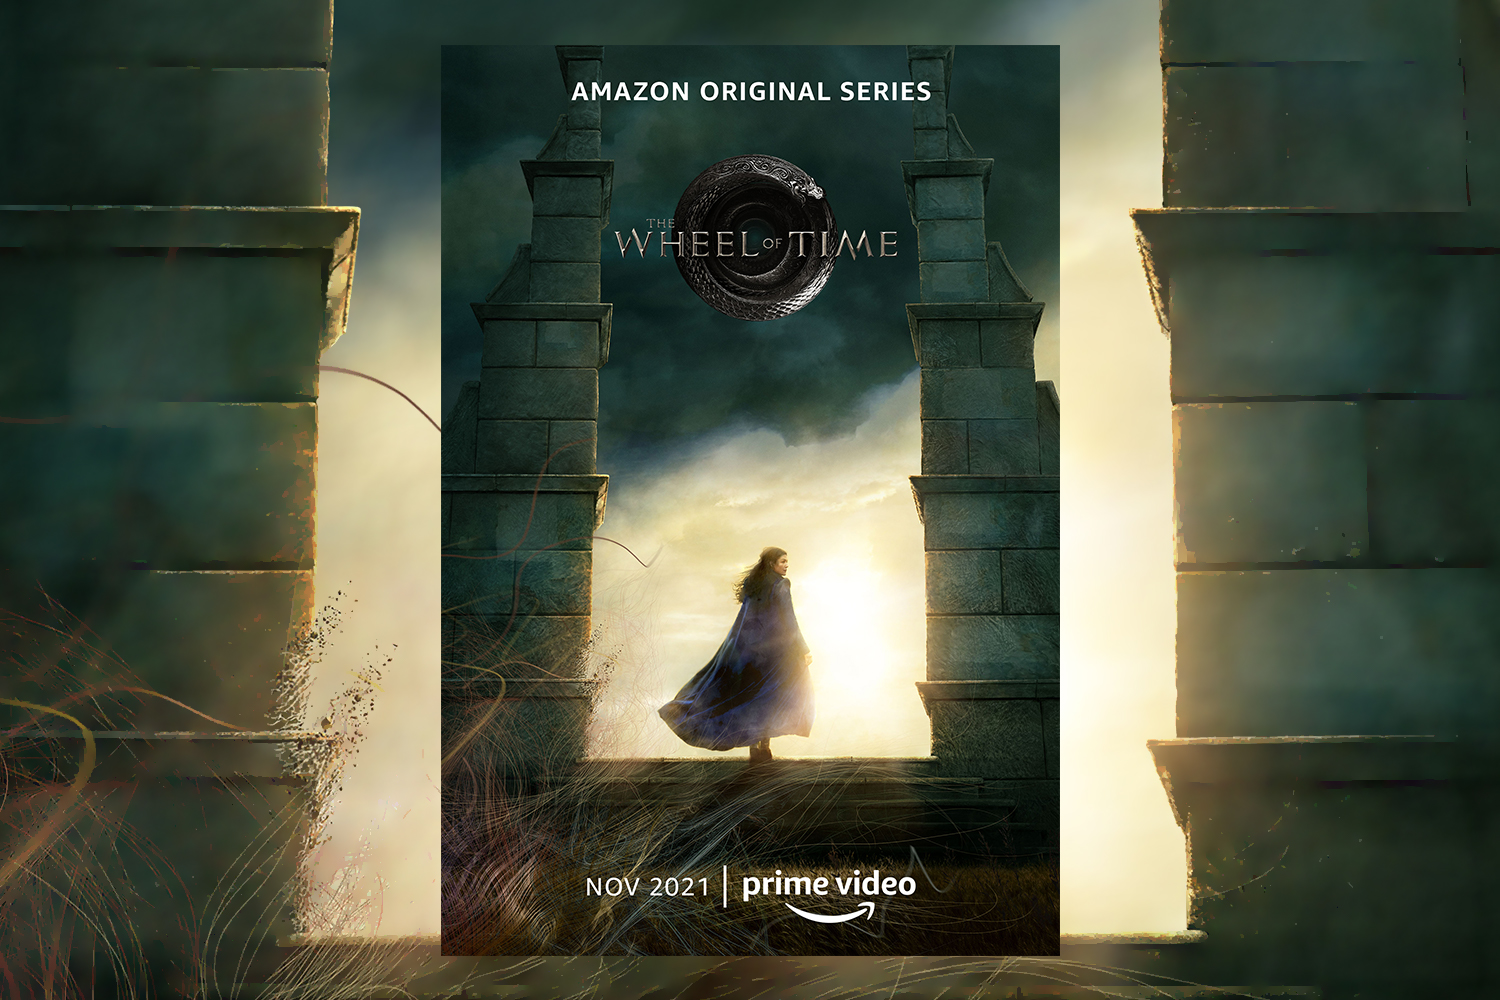 """A poster for the new Amazon Original Series """"The Wheel of Time,"""" which will debut on Prime Video in November. It's based on Robert Jordan's high fantasy book series."""